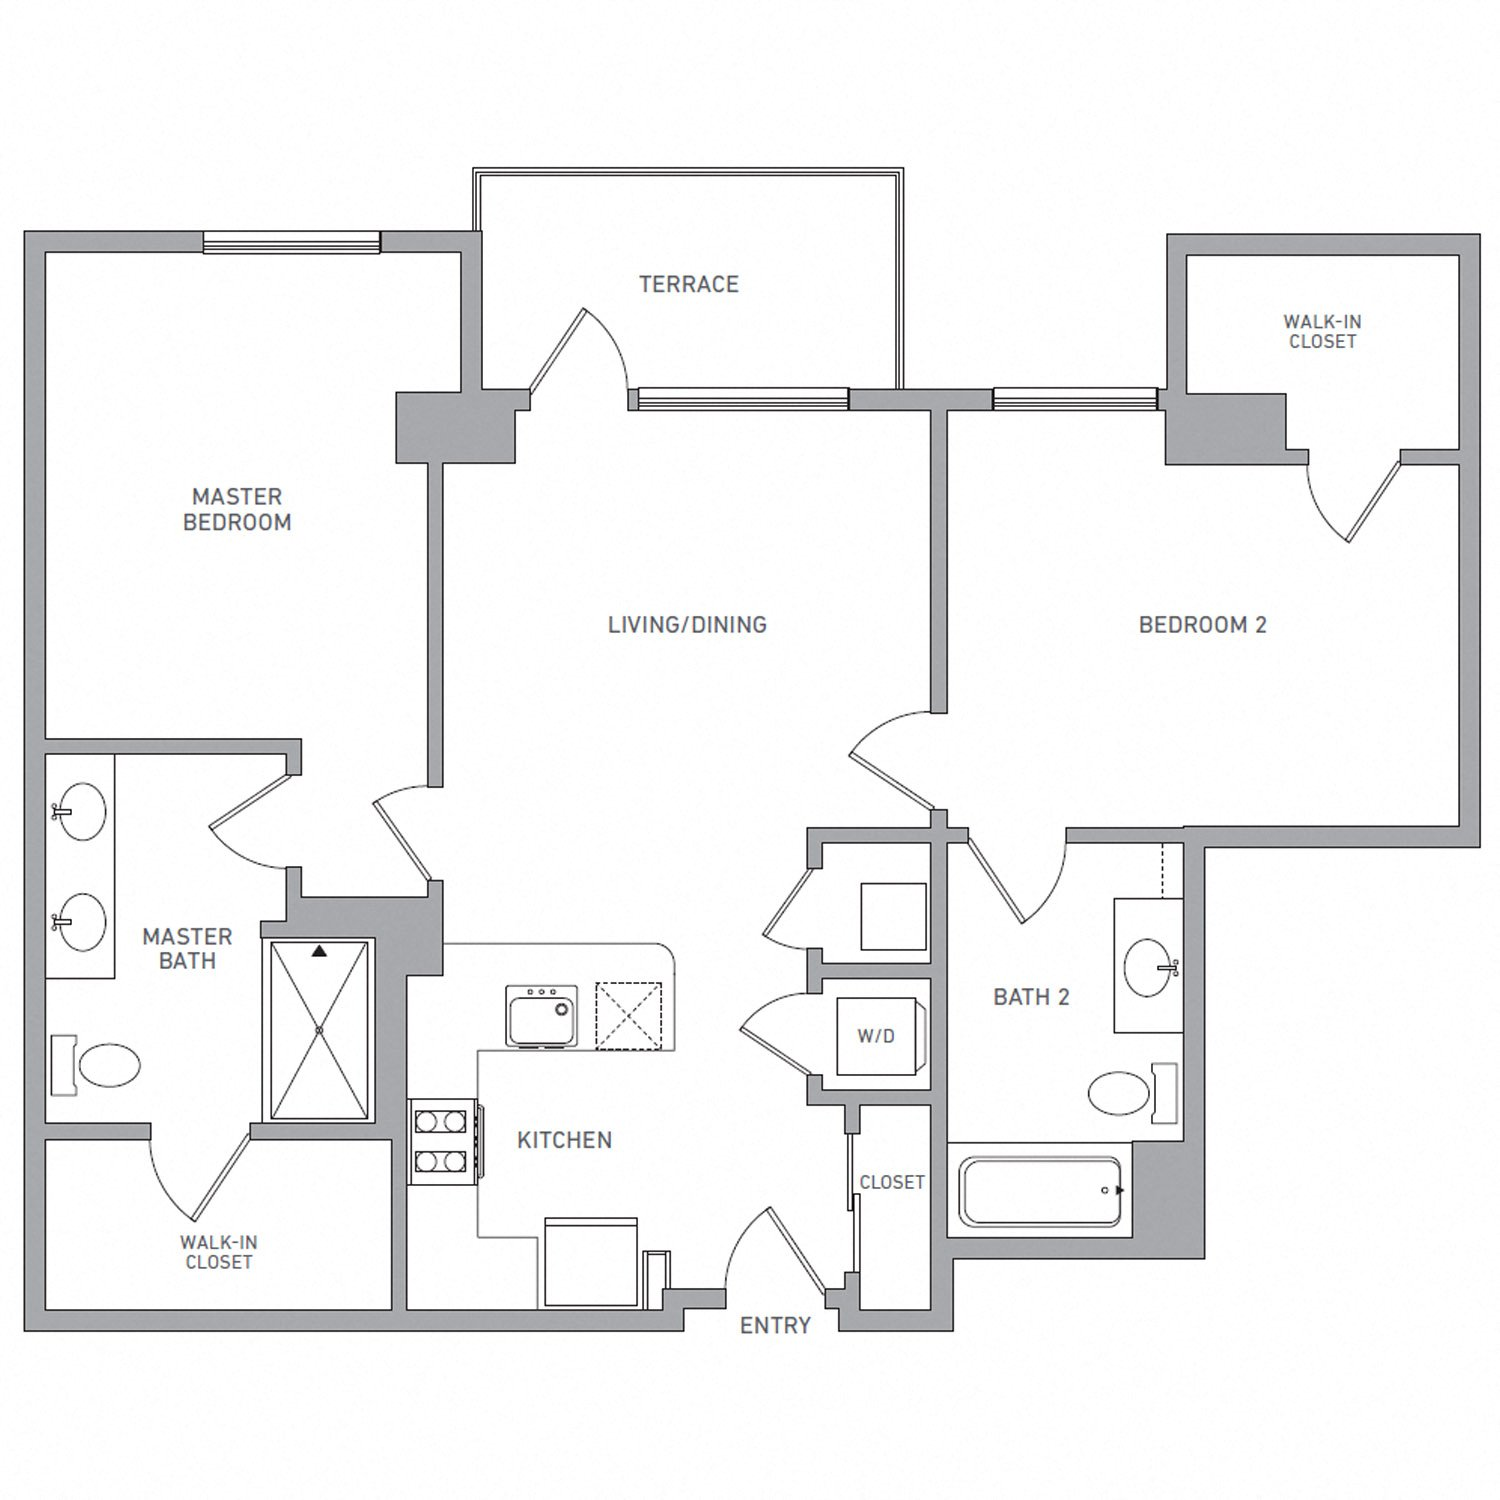 B Five floor plan diagram. Two bedrooms, two bathrooms, an open kitchen and living area, a terrace, and a washer dryer.